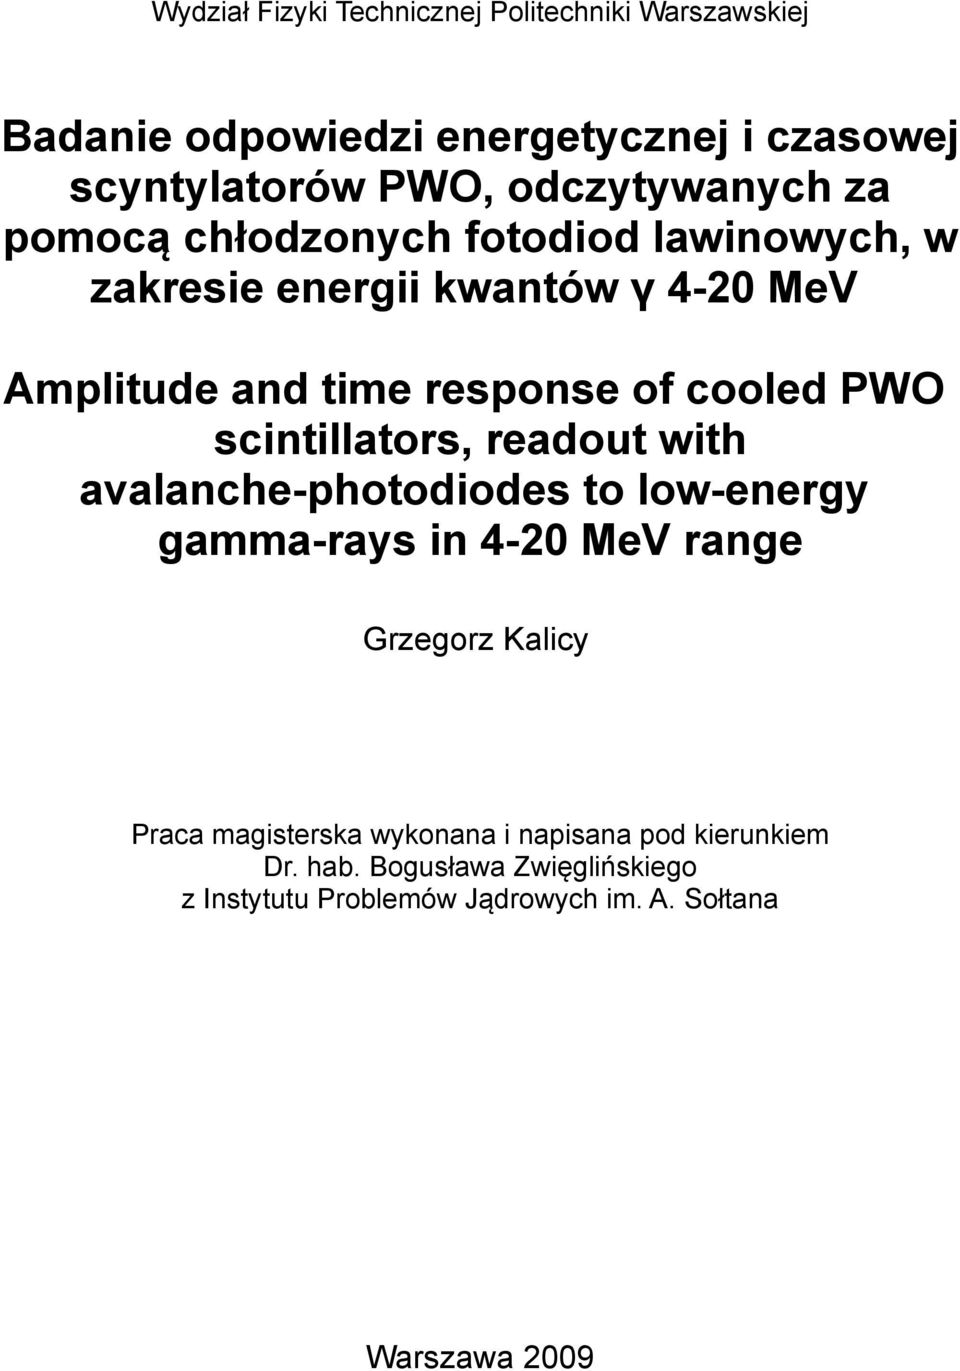 cooled PWO scintillators, readout with avalanche-photodiodes to low-energy gamma-rays in 4-20 MeV range Grzegorz Kalicy Praca